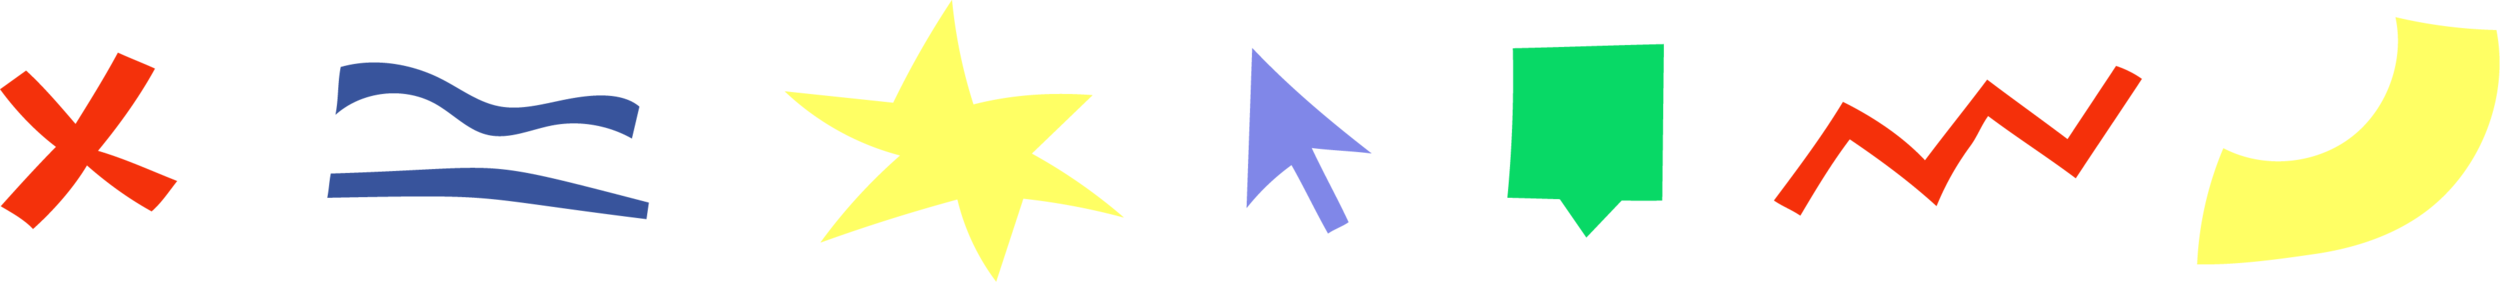 Shapes@2x.png